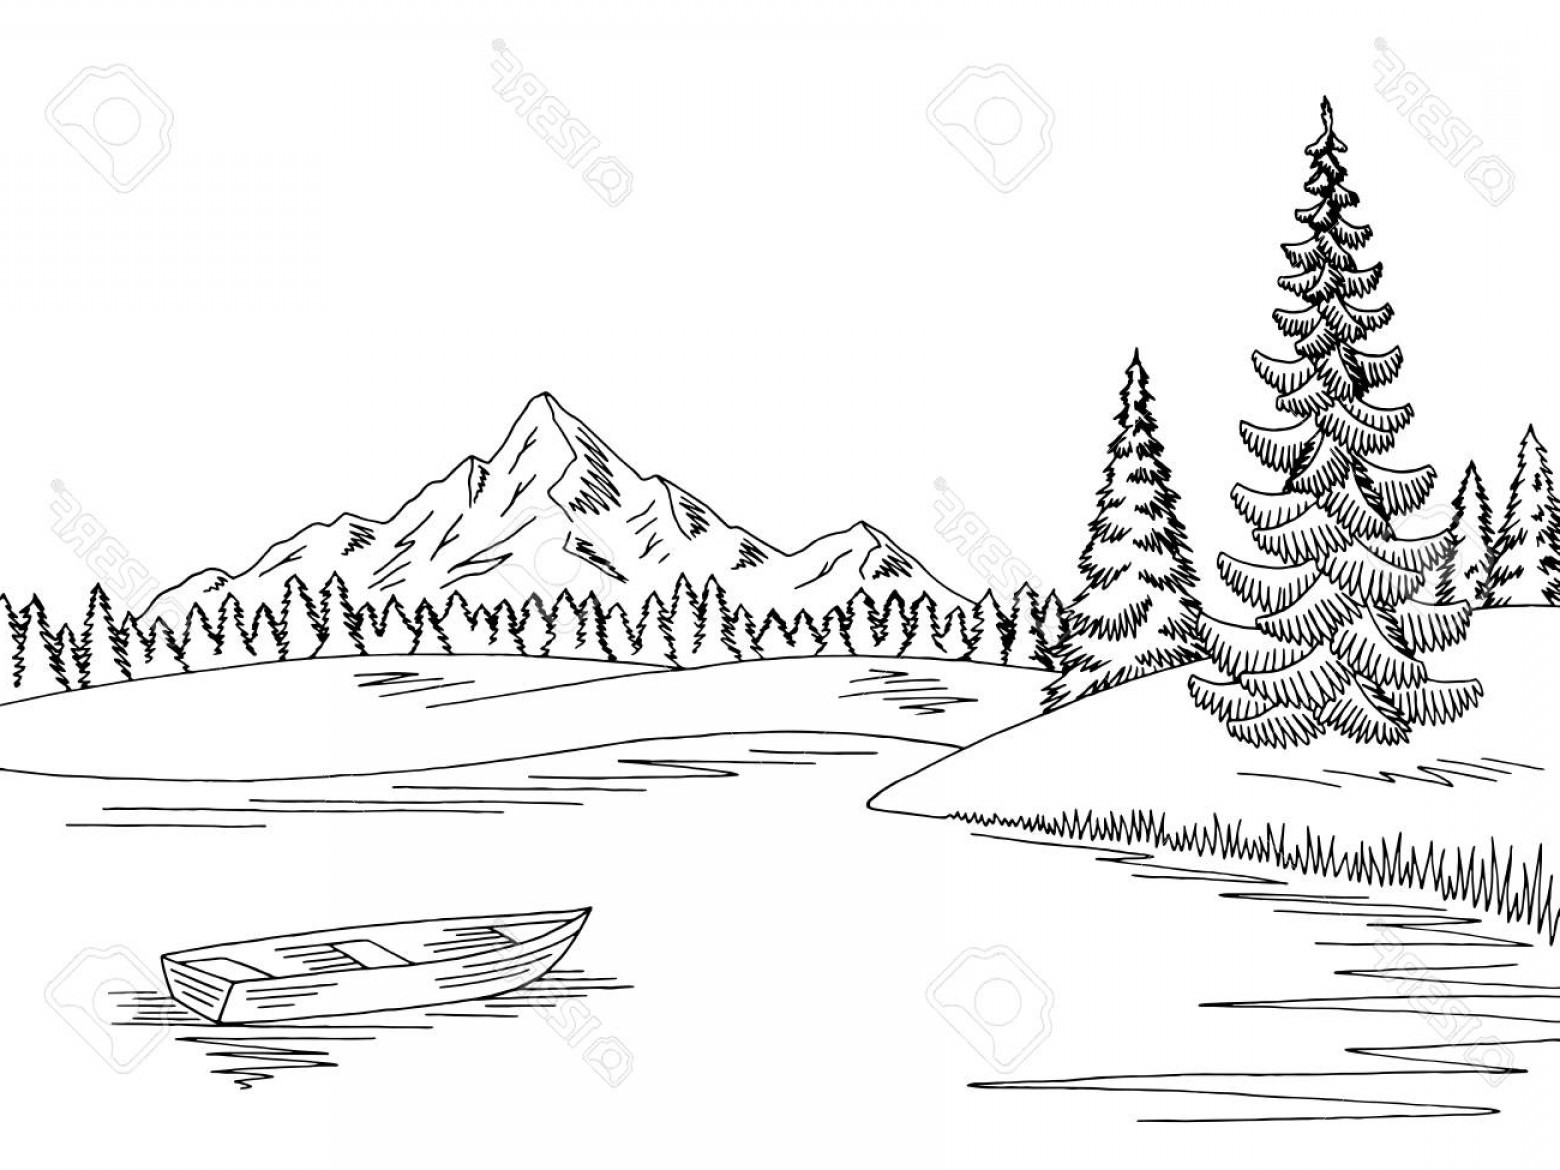 Cartoon mountain lake and tree clipart black and white picture royalty free download Photostock Vector Mountain Lake Graphic Black White Landscape Sketch ... picture royalty free download